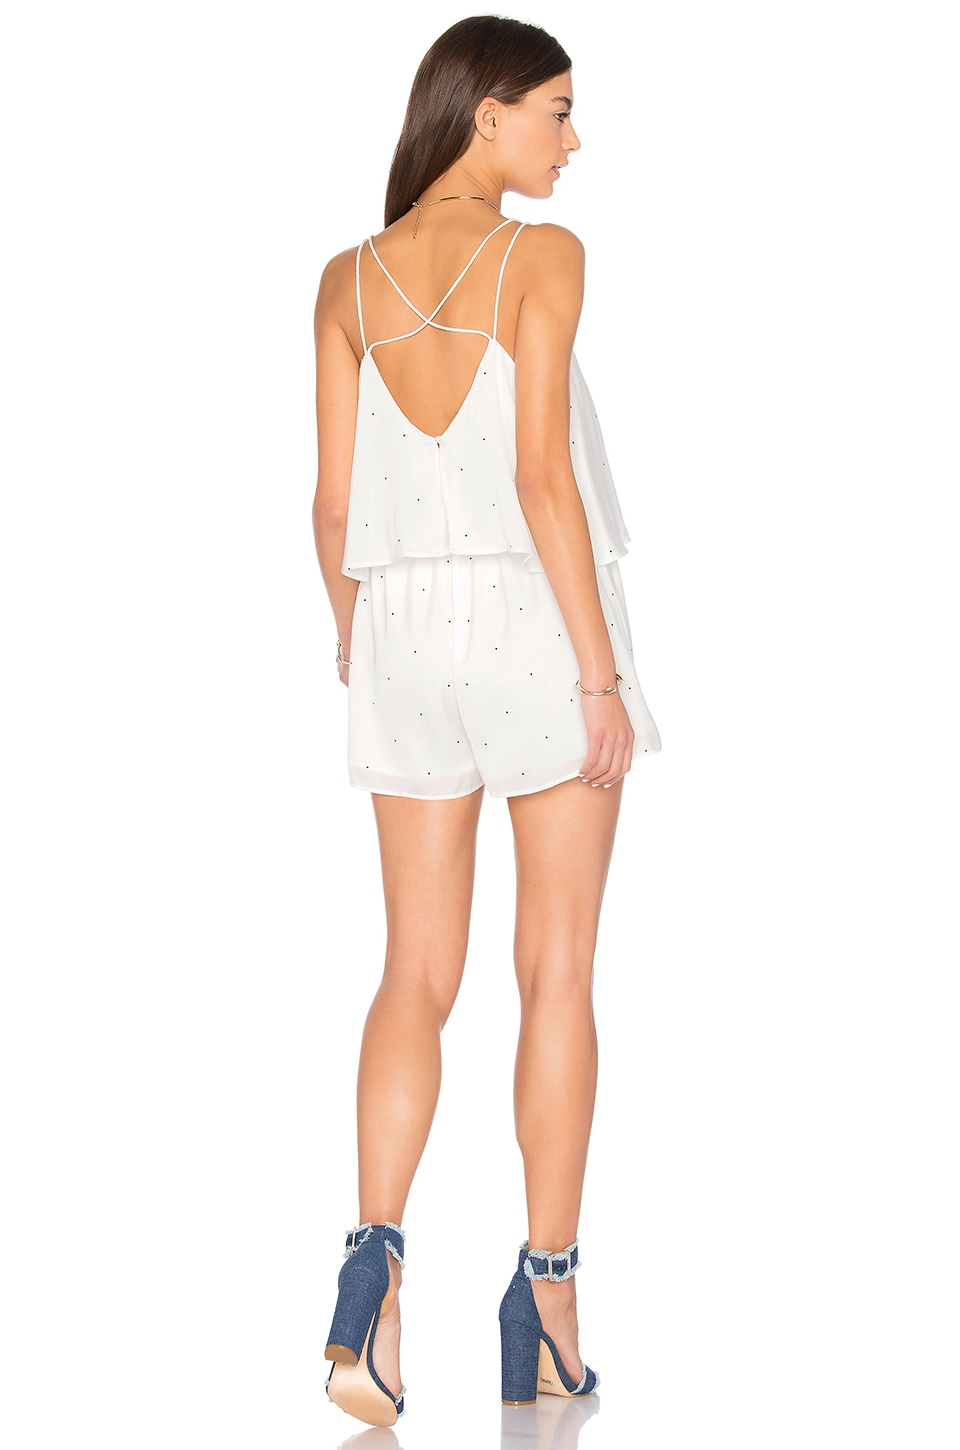 New Wave Romper by The Fifth Label